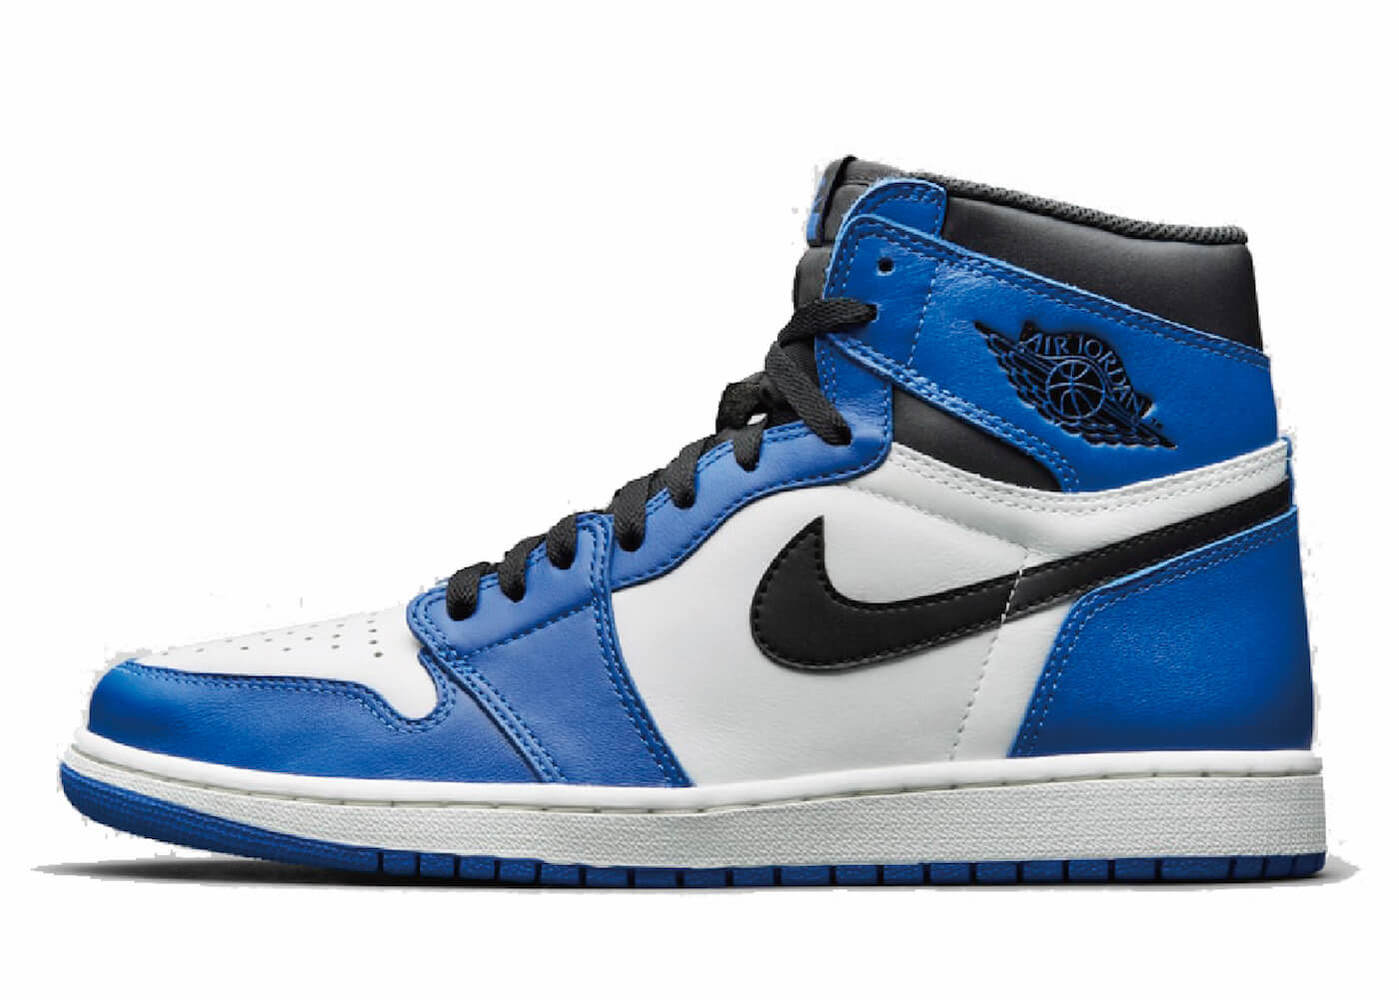 NIke Air Jordan 1 Retro High OG Game Royal (2018)の写真